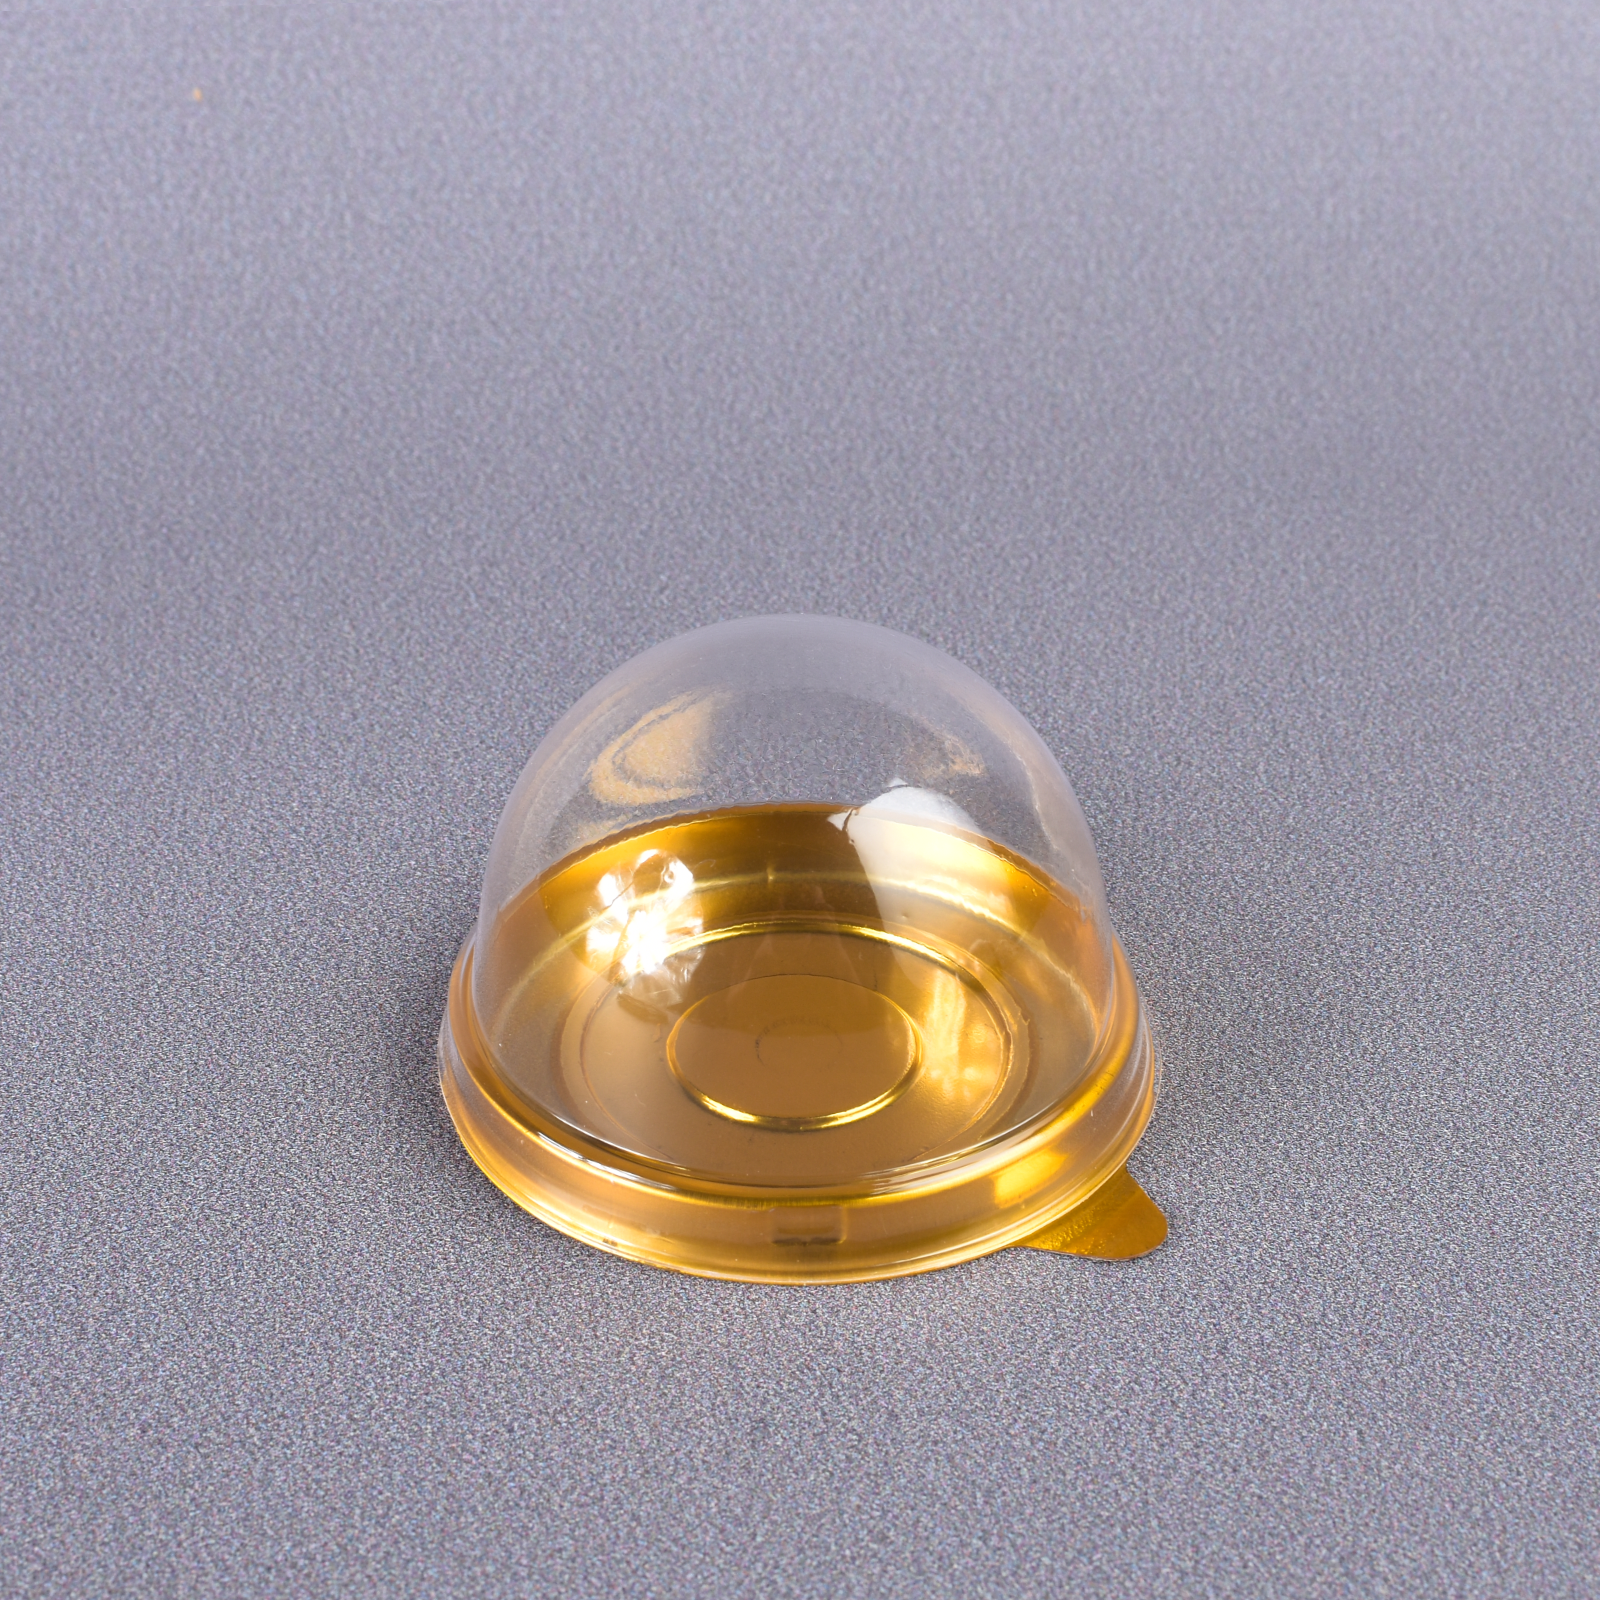 YT09G Moon Cake Tray Gold.png